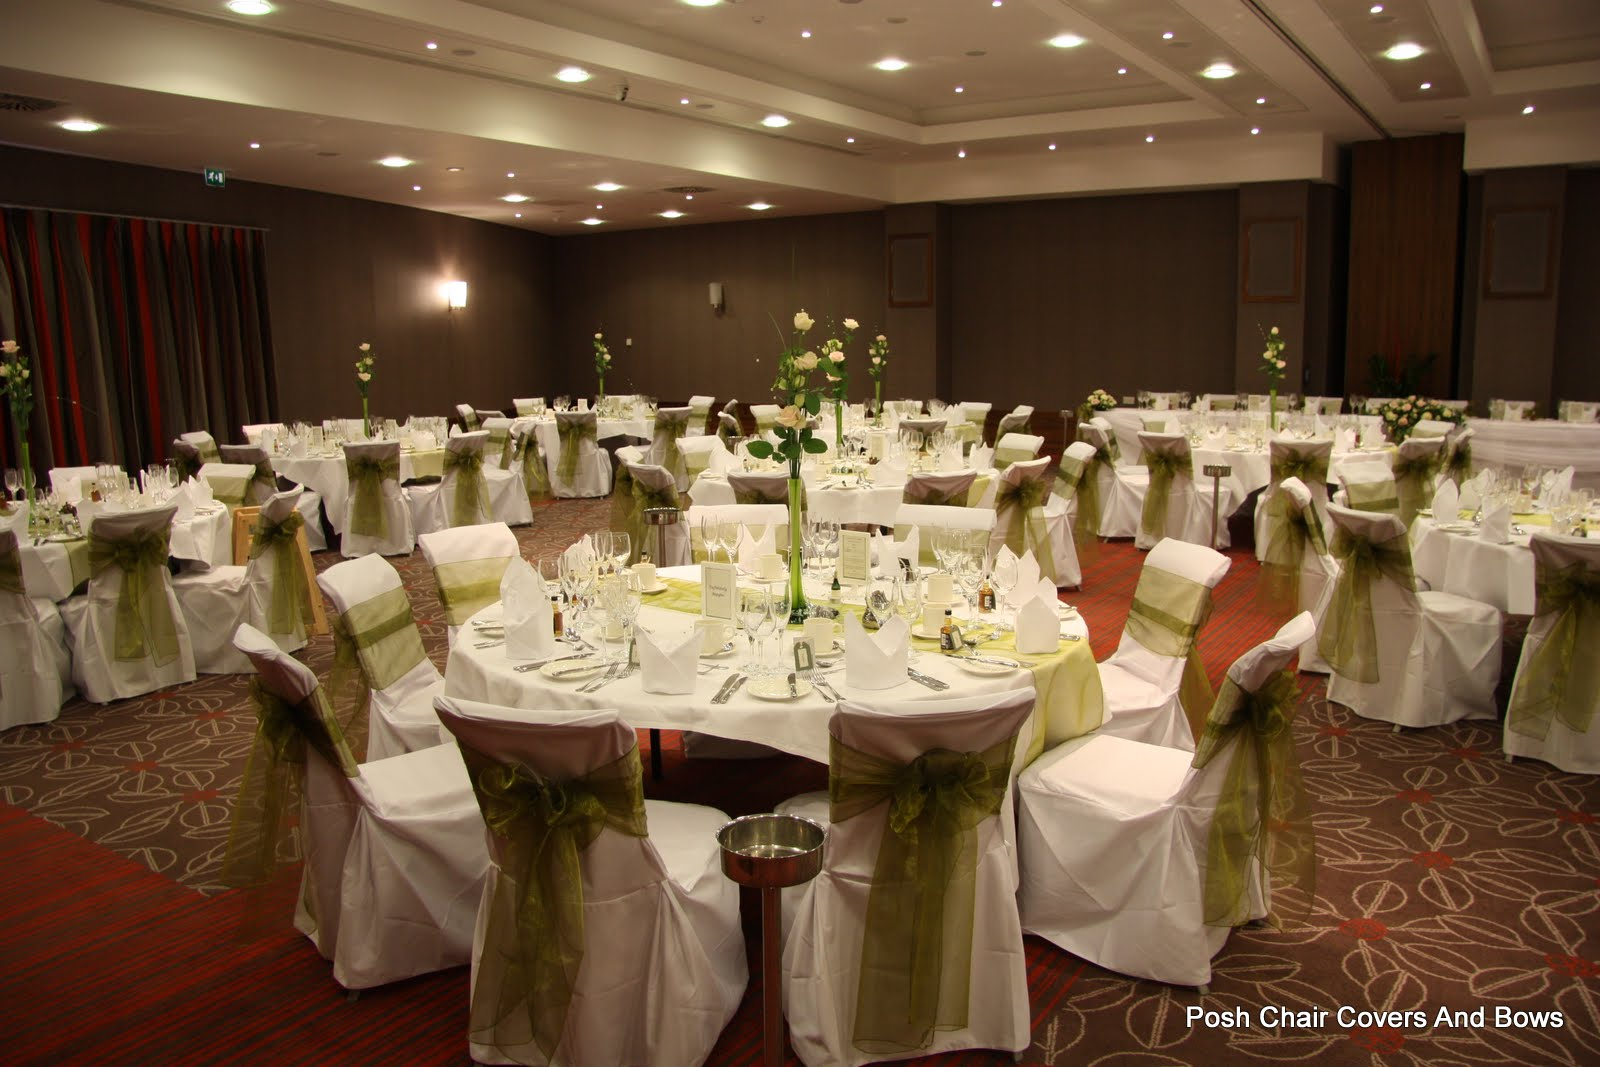 chair cover hire sunderland wheel online price posh covers bows chiavari chairs flower wall durham radisson